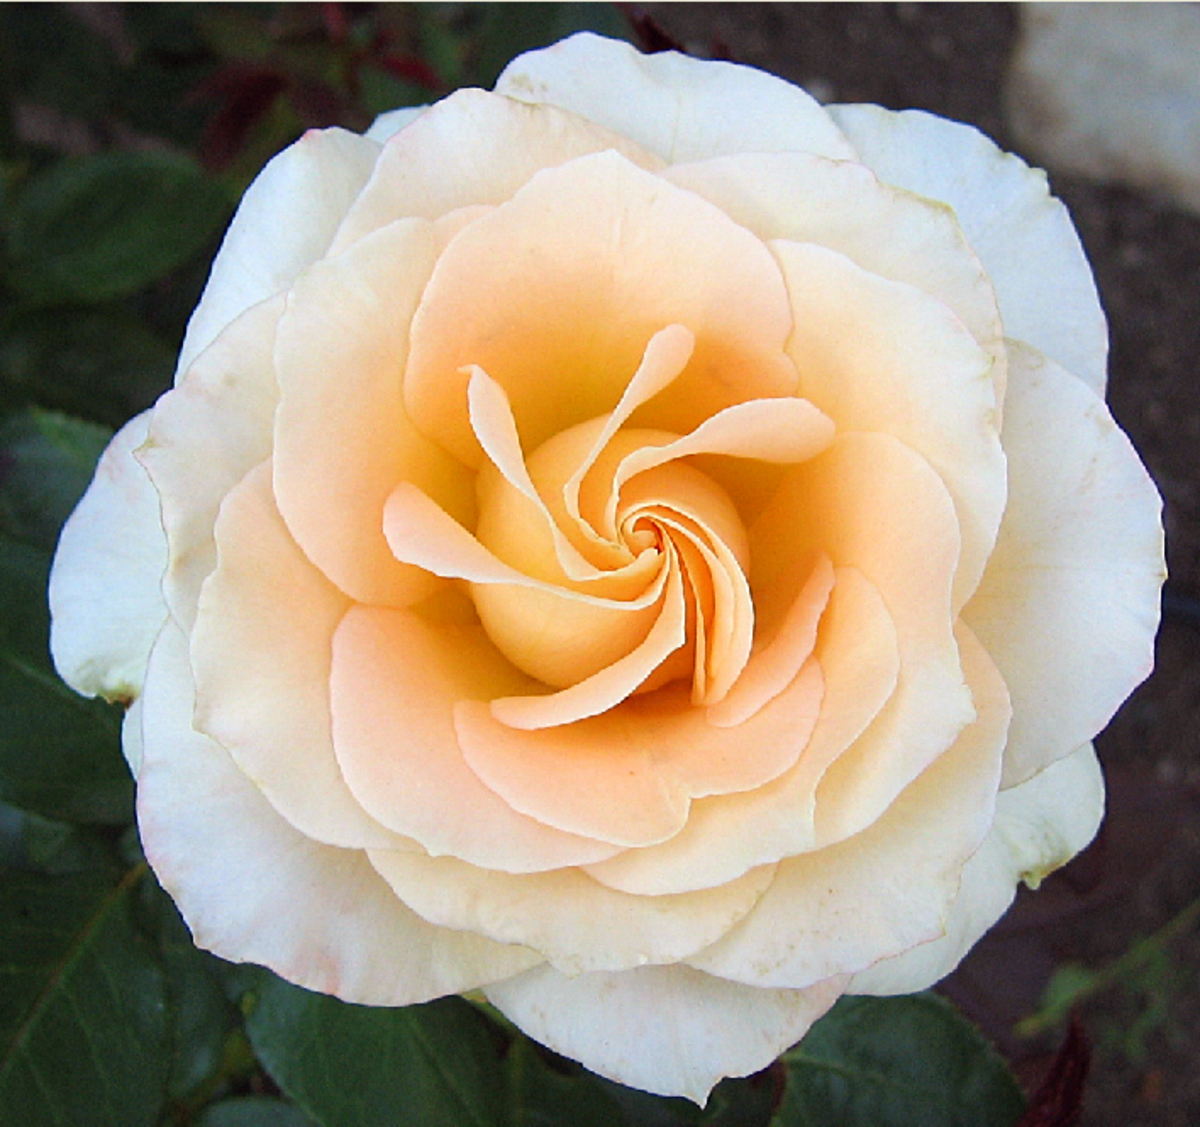 Peach and White Rose Close-up Pic